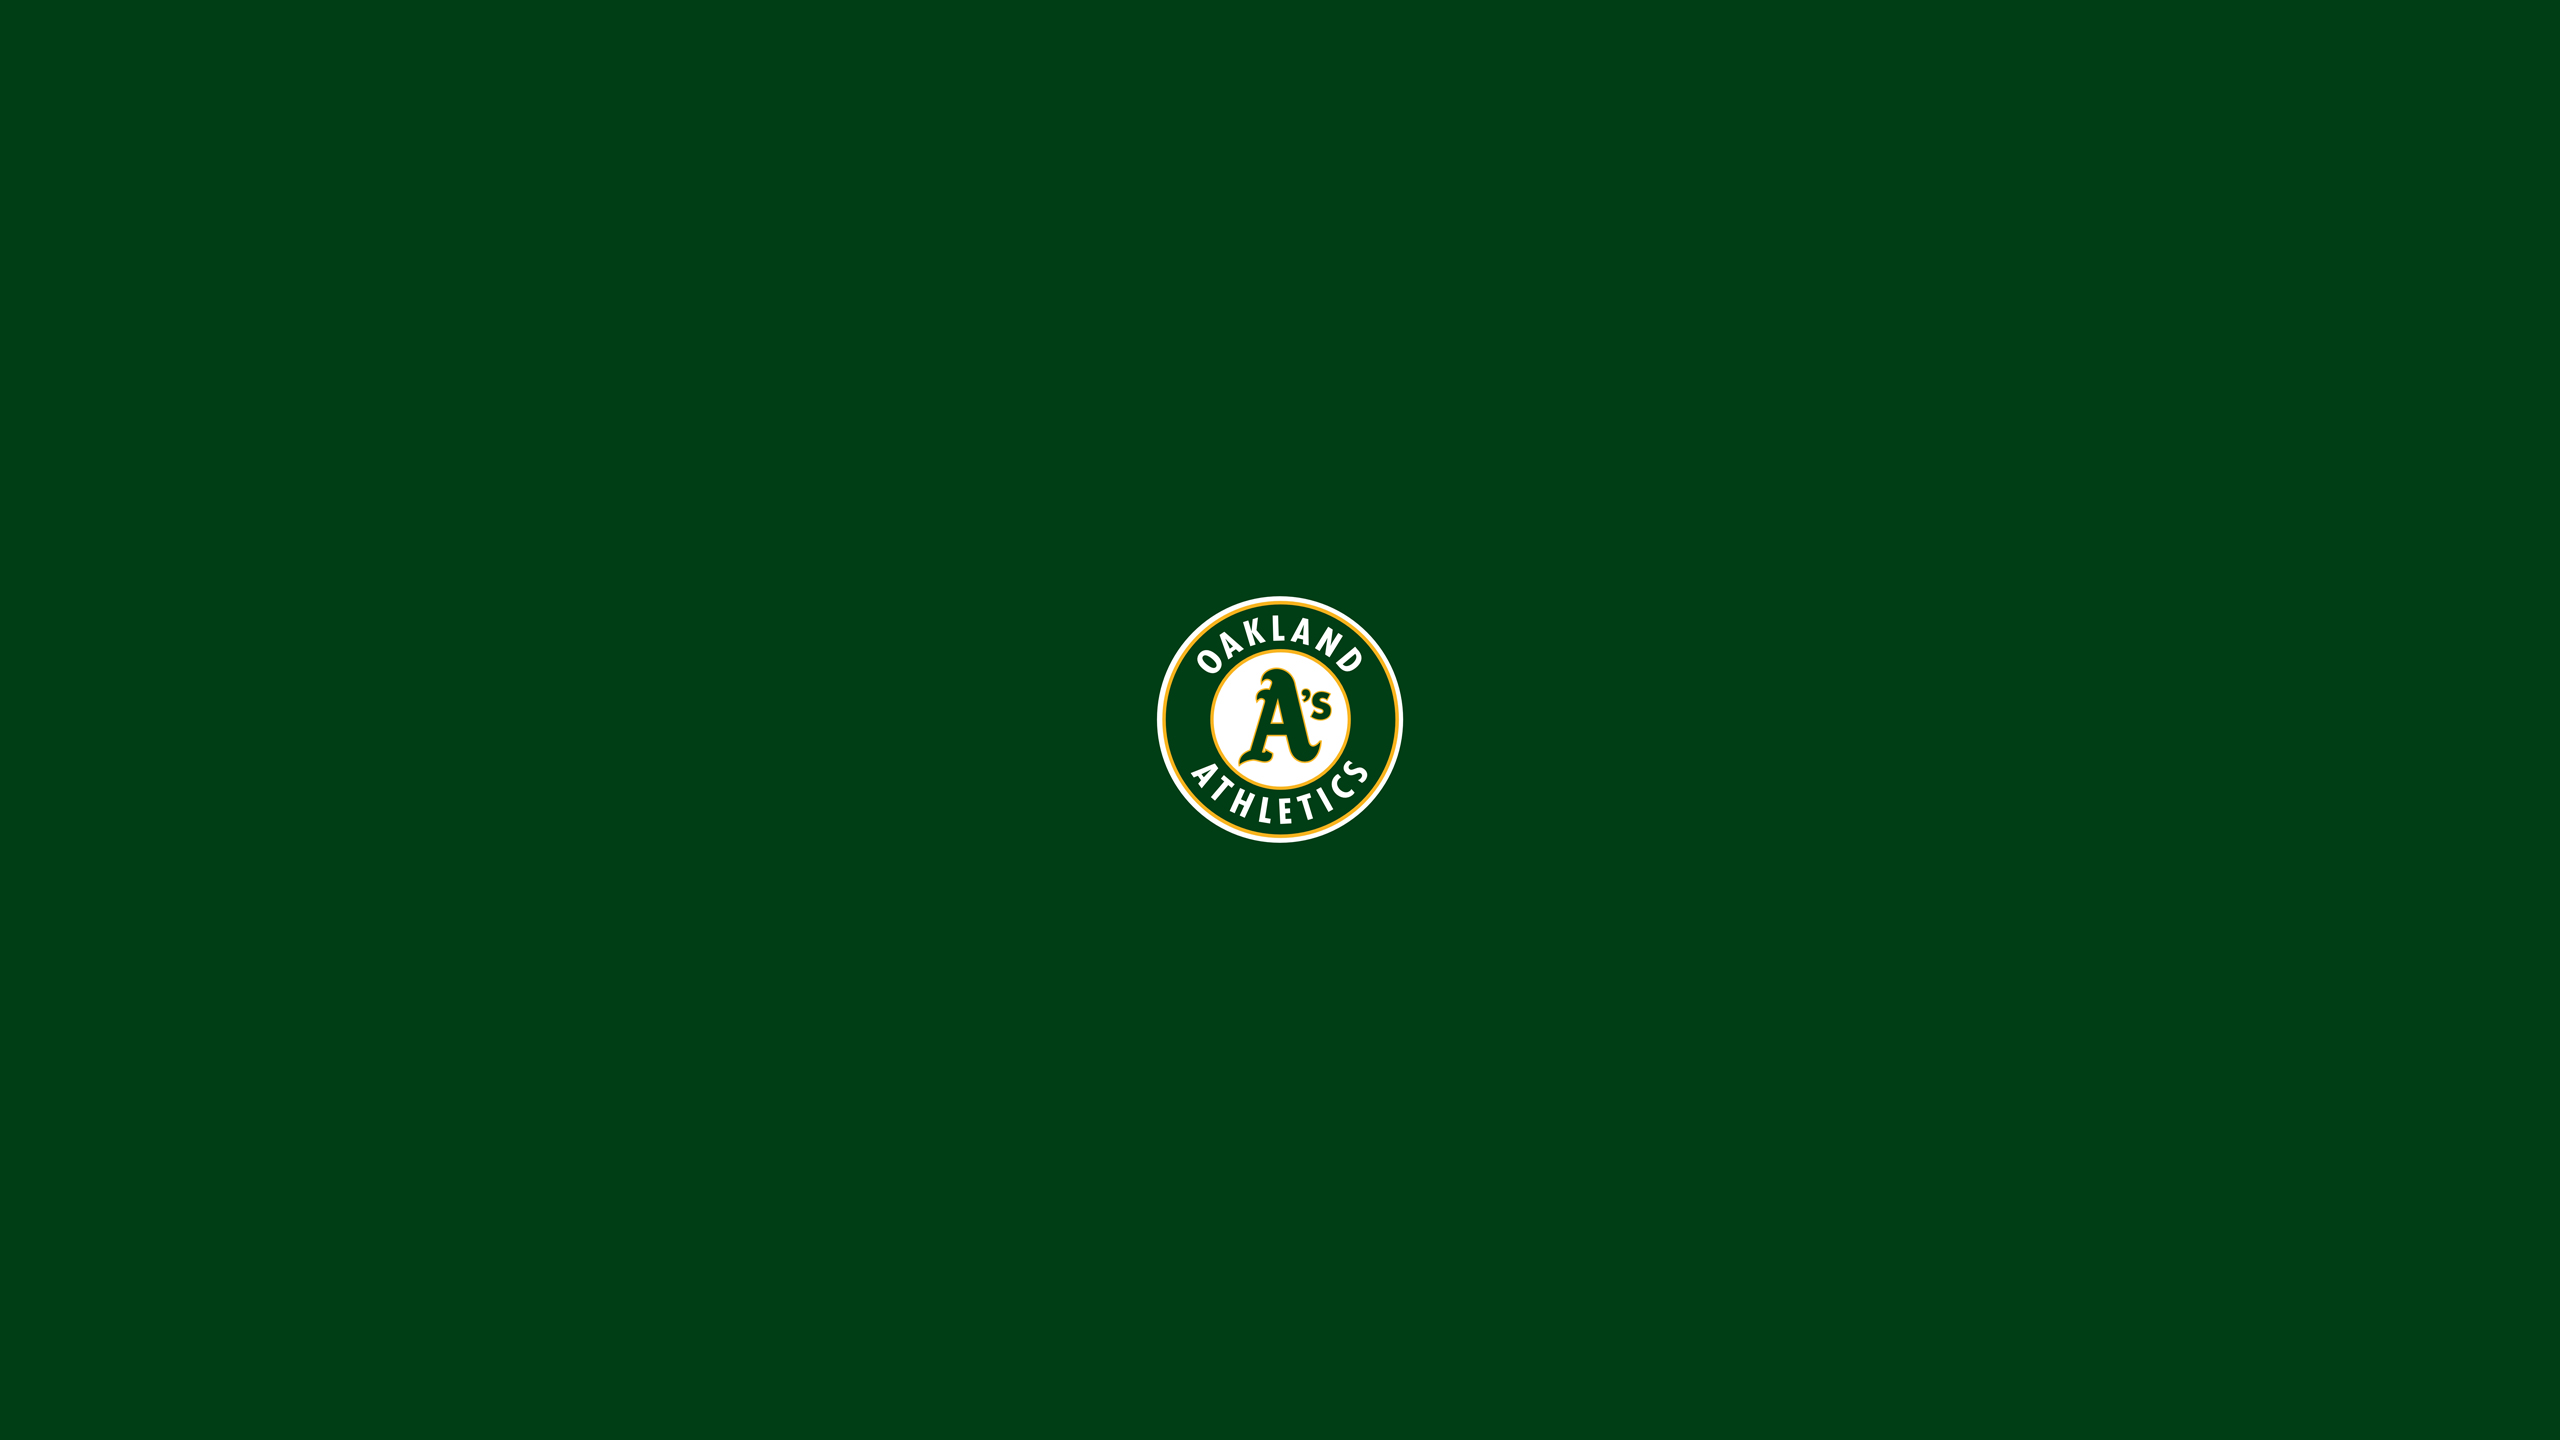 Oakland Athletics Wallpaper 8   2560 X 1440 stmednet 2560x1440